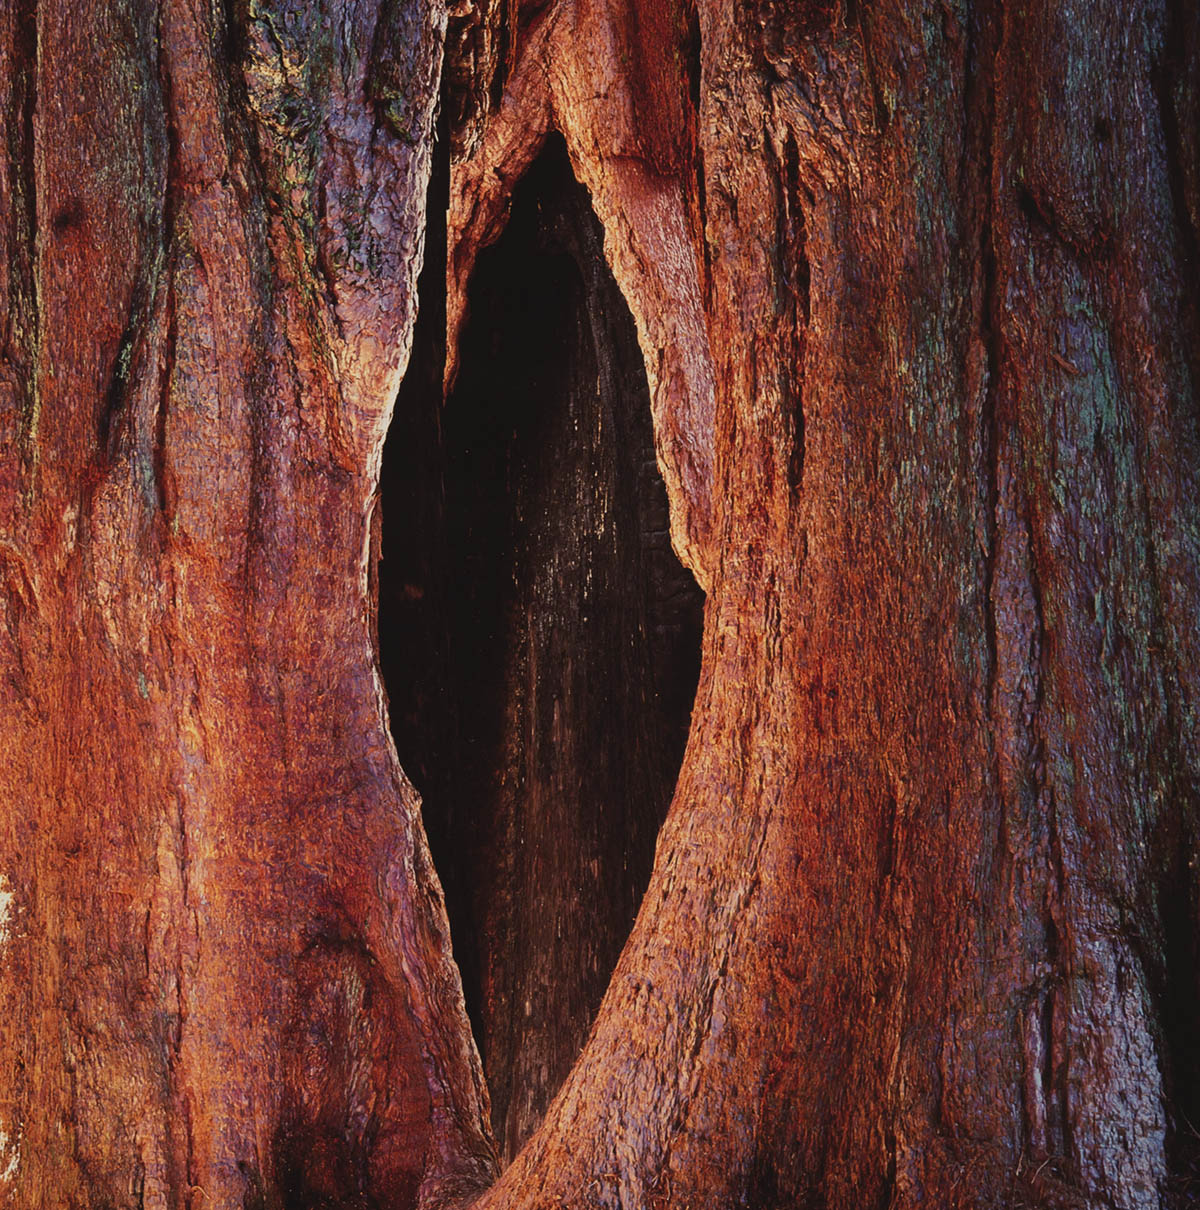 Glowing Sequoia Trunks